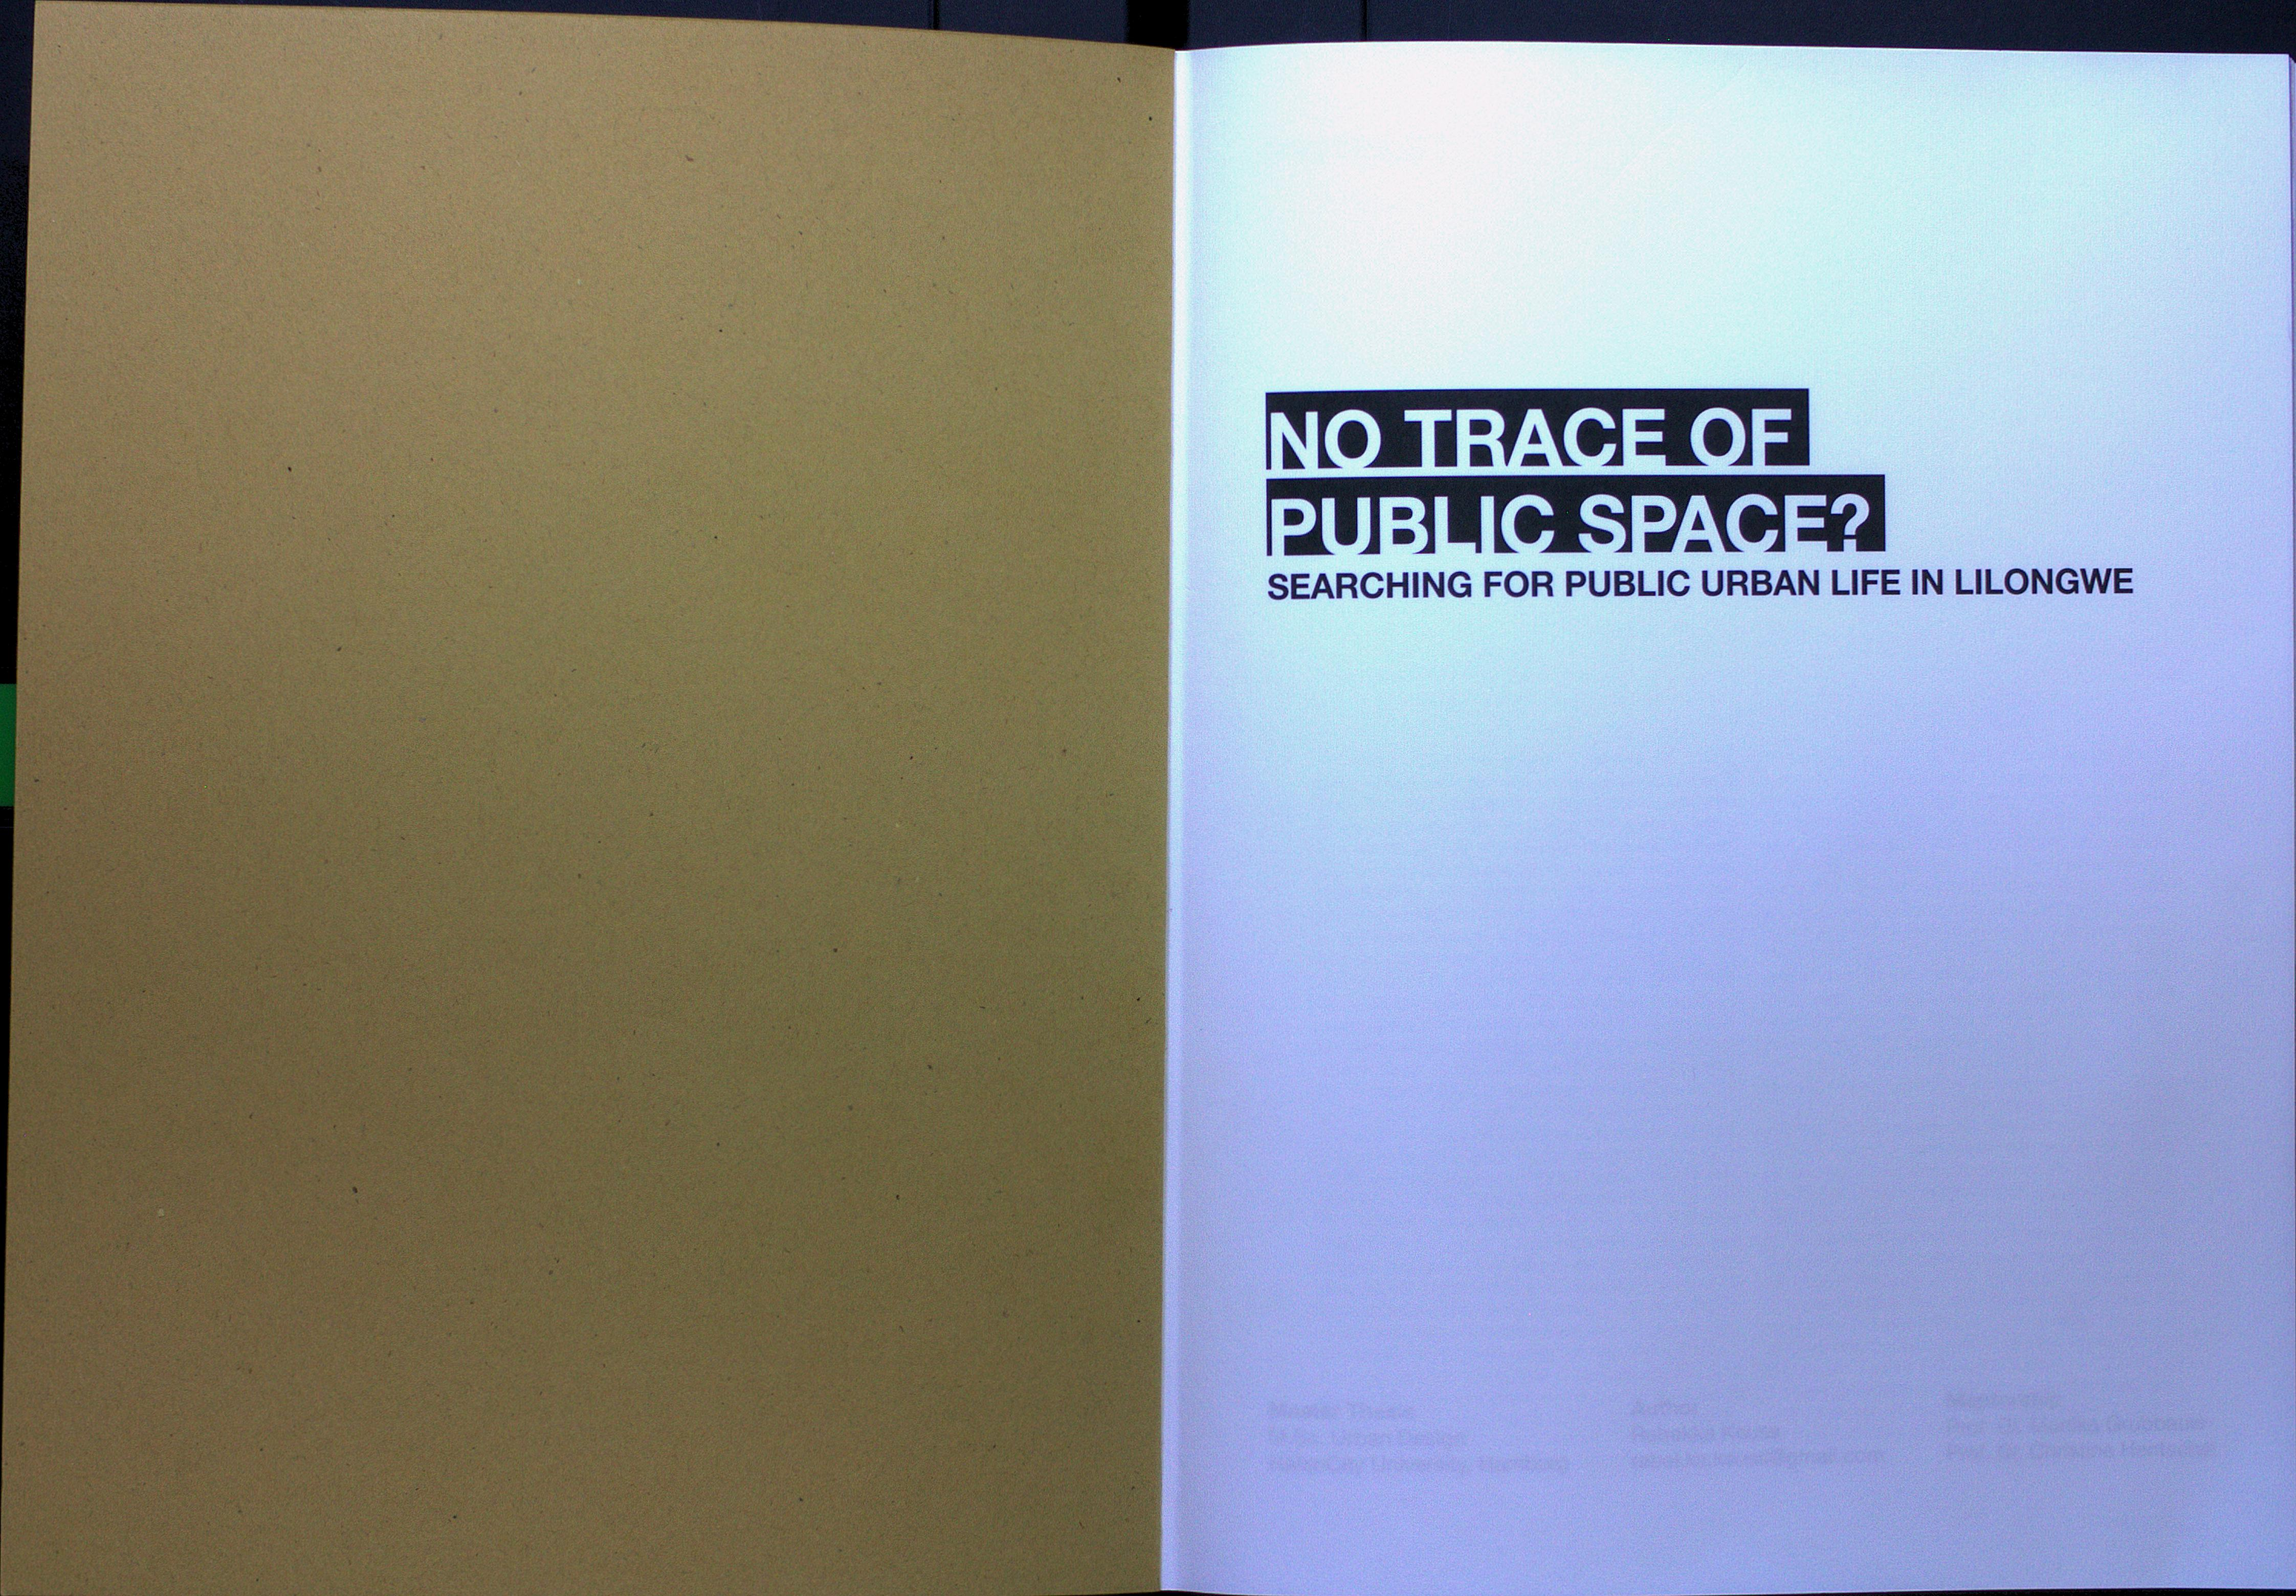 http://ud.hcu-hamburg.de/projects/master-theses/no-traces-of-public-space-2018